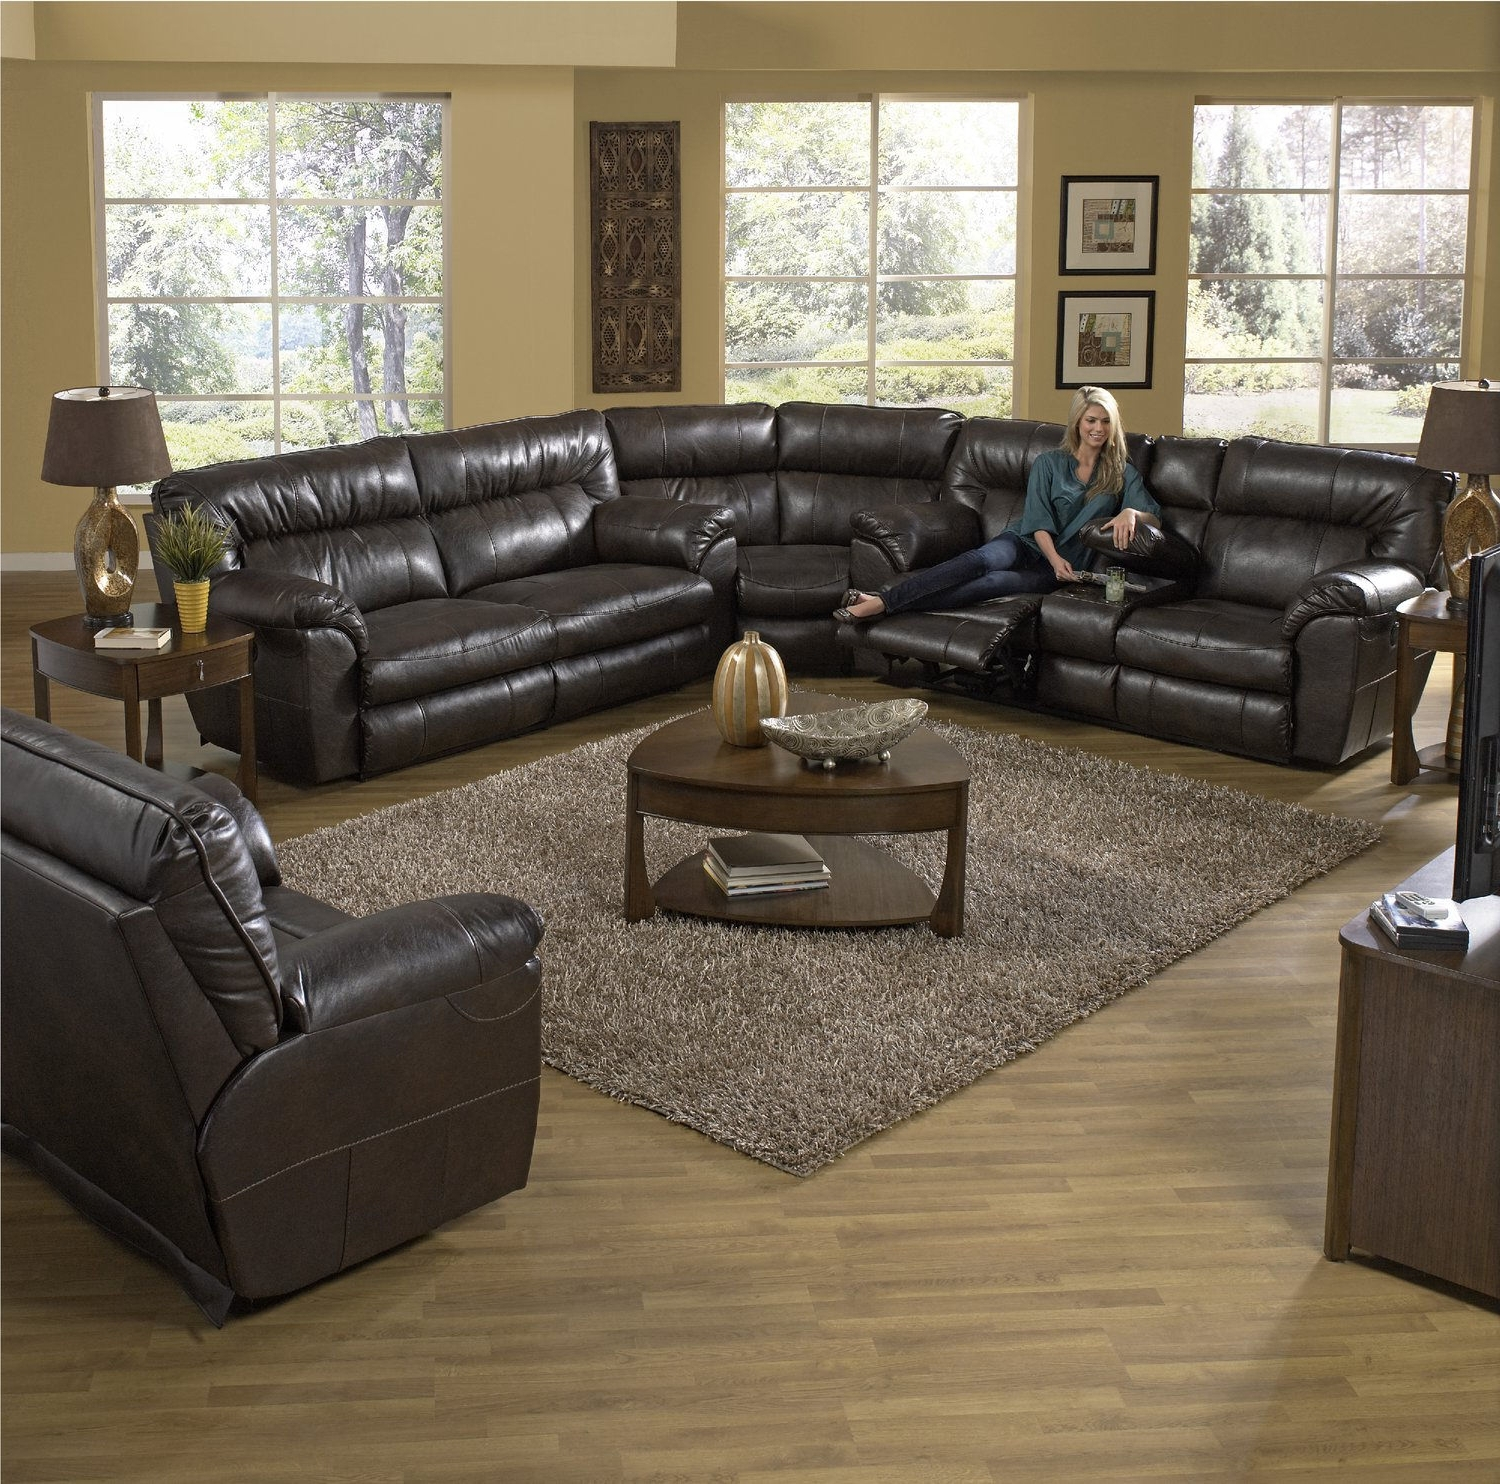 Living Room Sets – Traditional To Modern – Hom Furniture In Preferred Minneapolis Sectional Sofas (View 6 of 20)